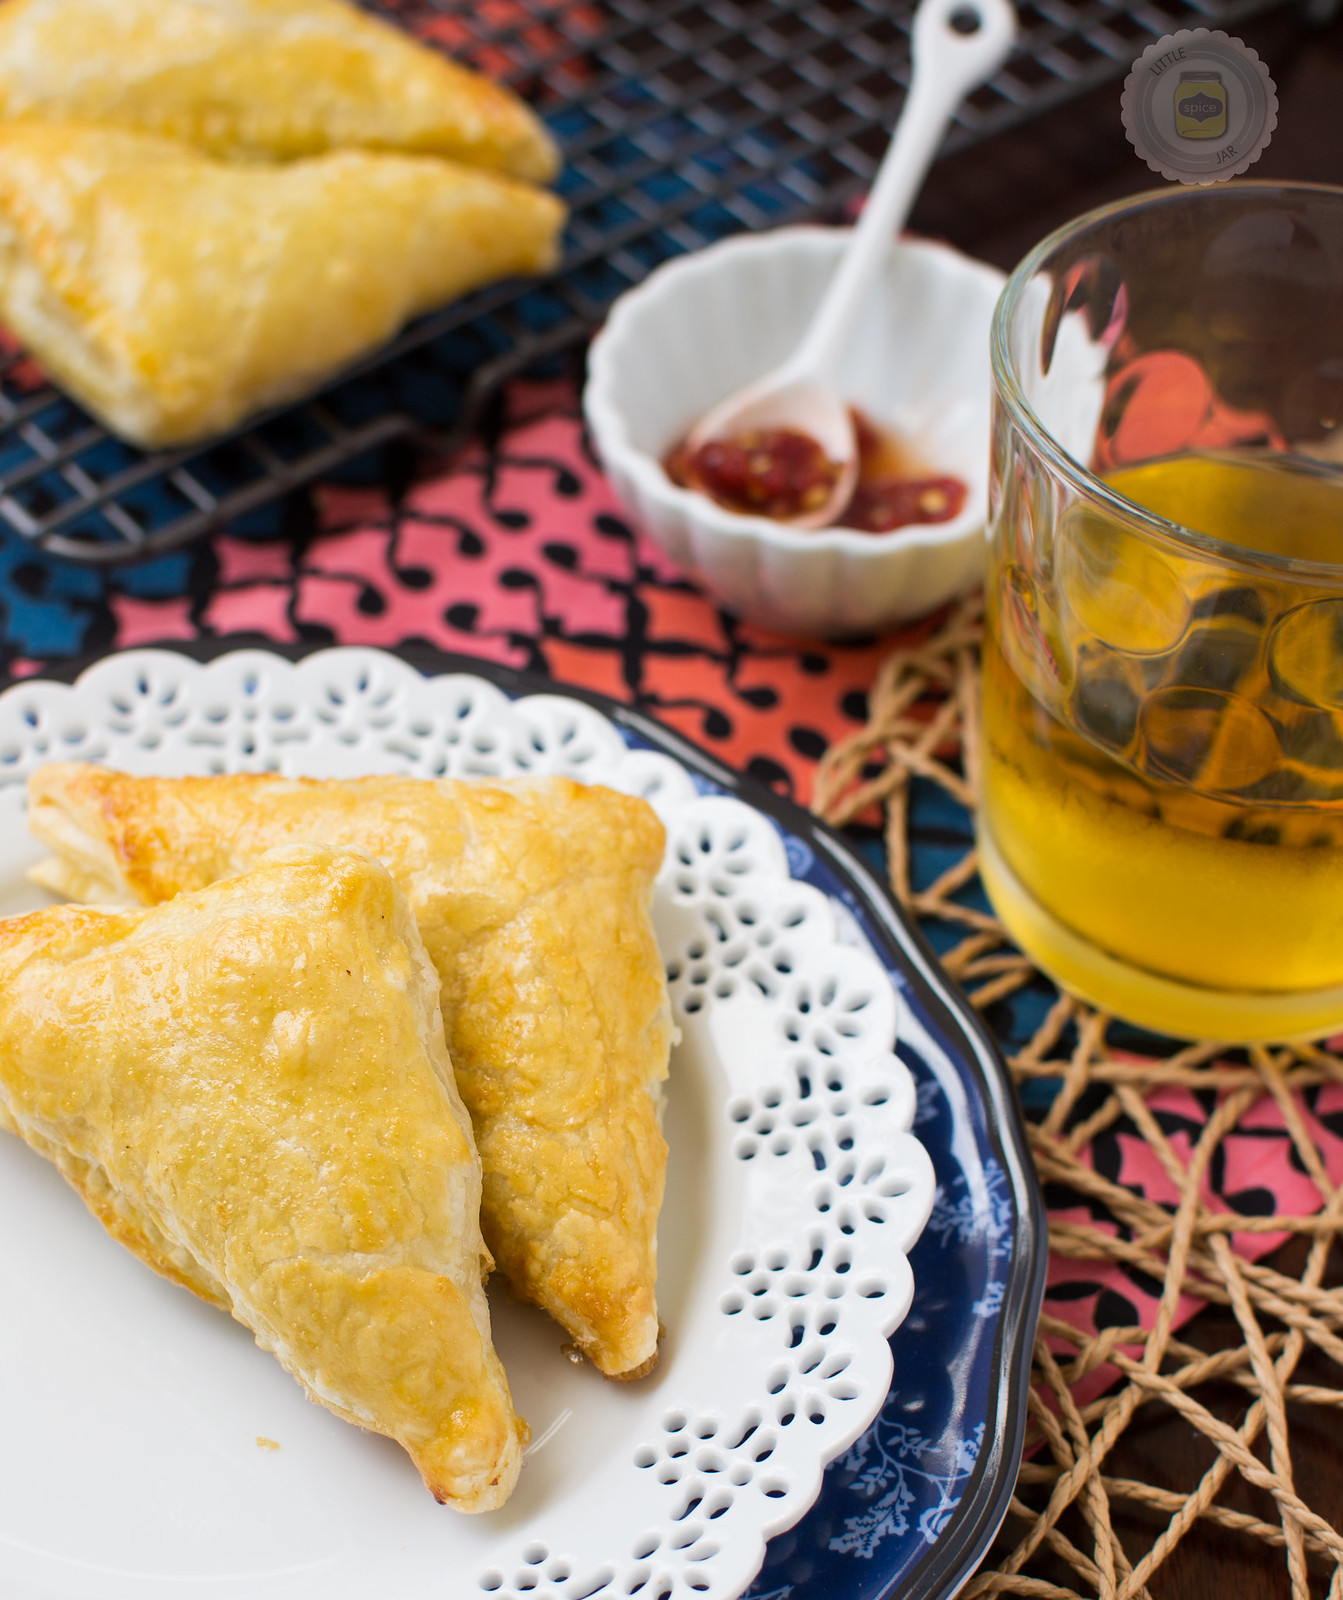 stacked plates with chicken puff pastry triangles, glass with drink, and chili garlic sauce in bowl with spoon